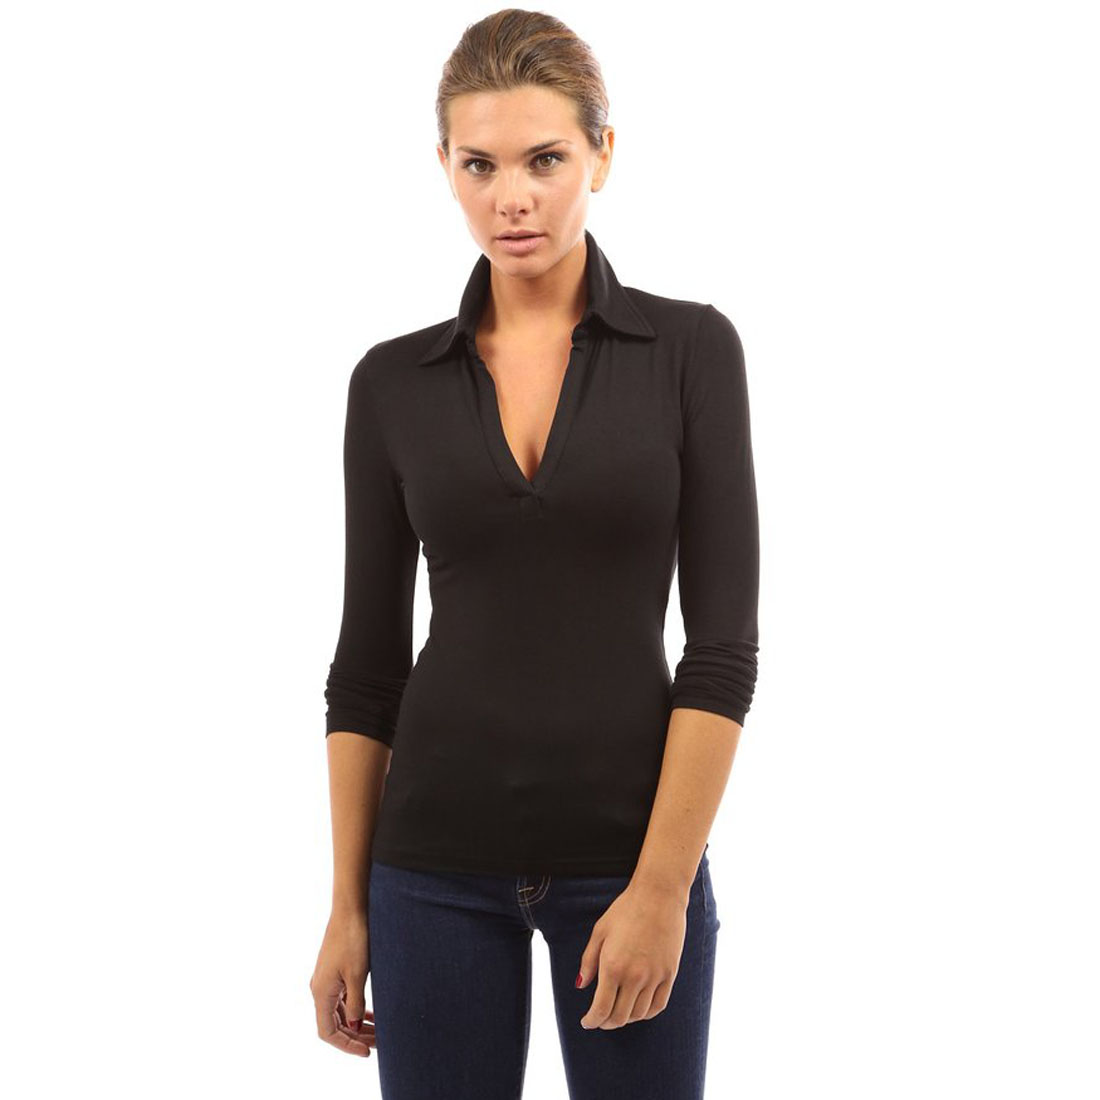 business casual shirts womens photo - 1